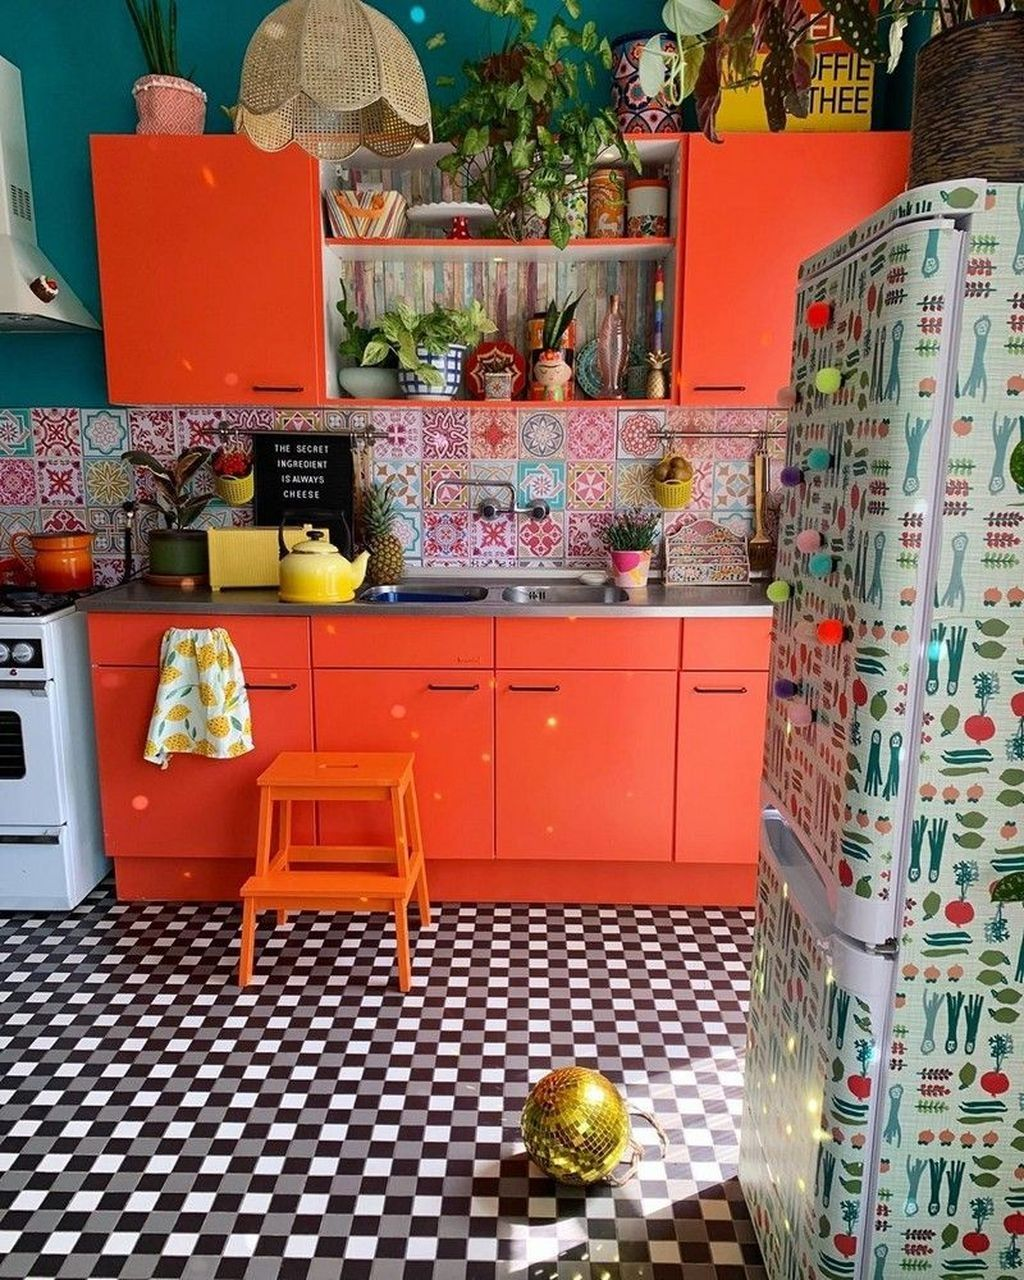 kitchen, patterned floor tiles, patterned wall tiles, orange cabinet and shelves, green wall, rattan pendant, white hood, white stove